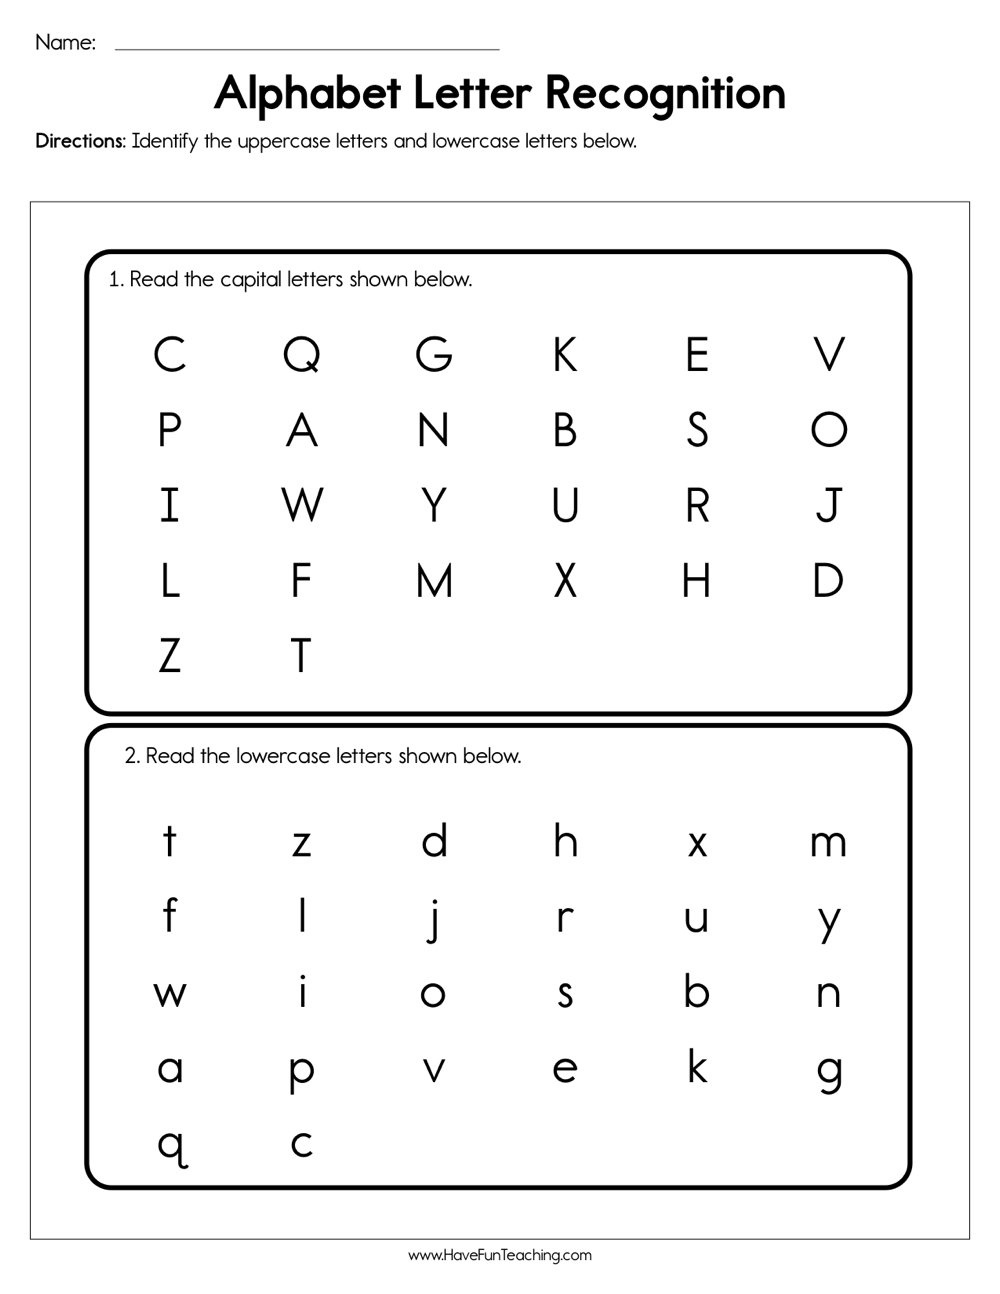 Resources | Phonics | Worksheets - Free Printable Phonics Assessments